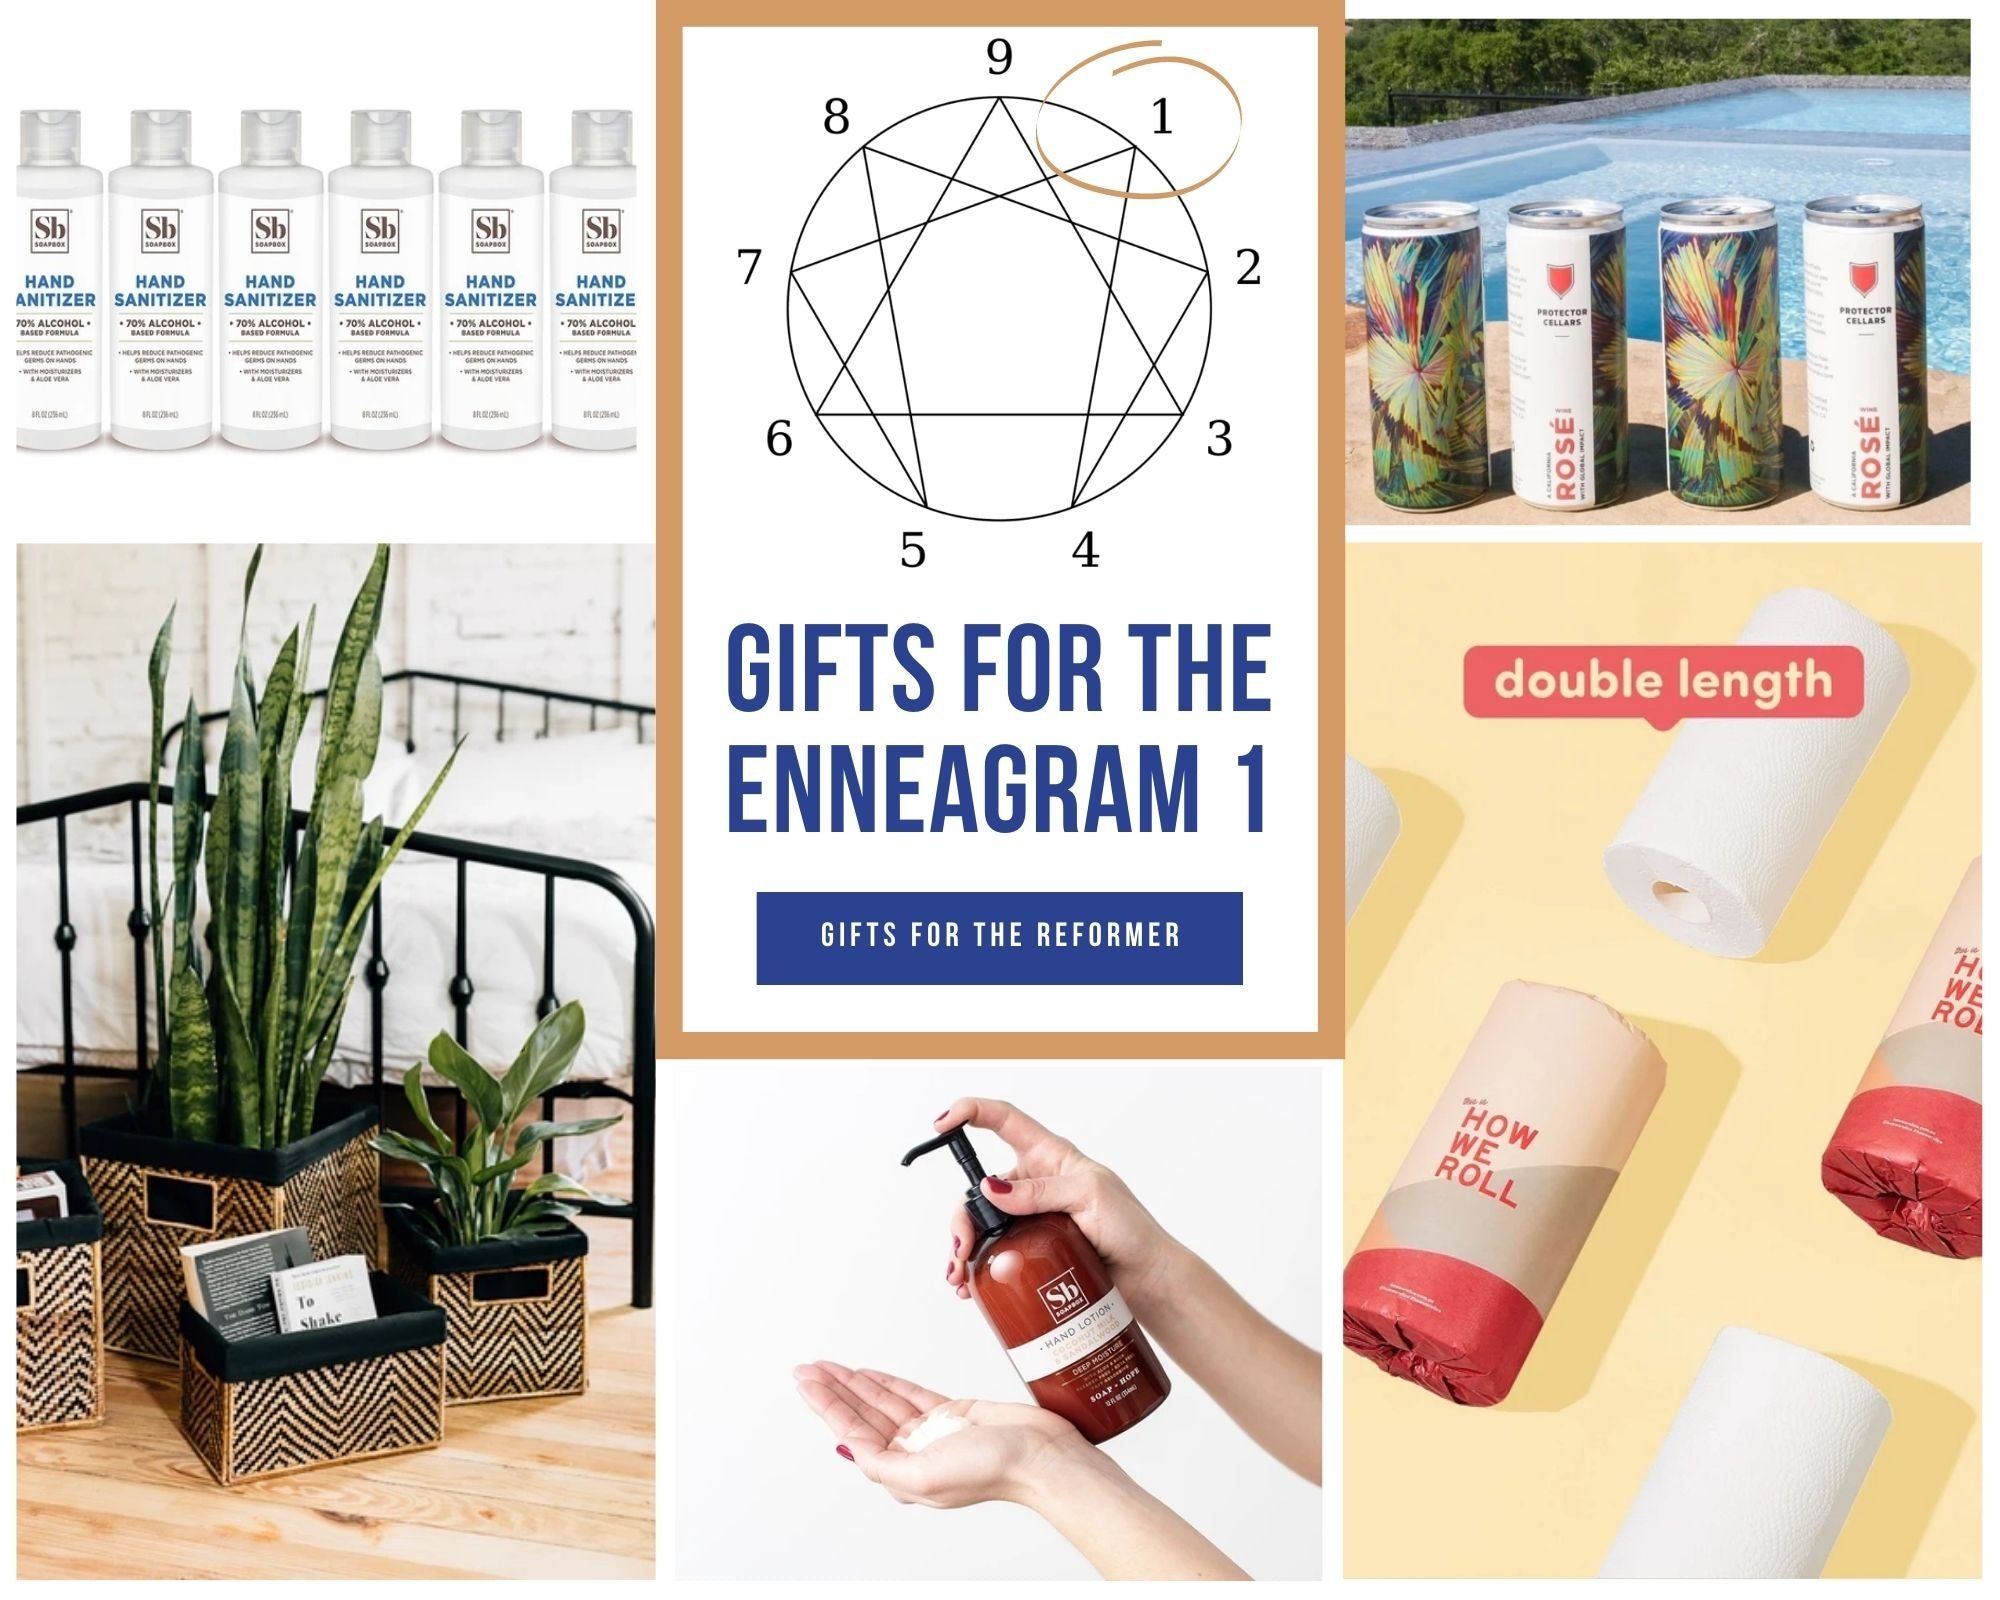 gifts for enneagram 1s with paper towels, wine, hand sanitizer, lotion, organizers